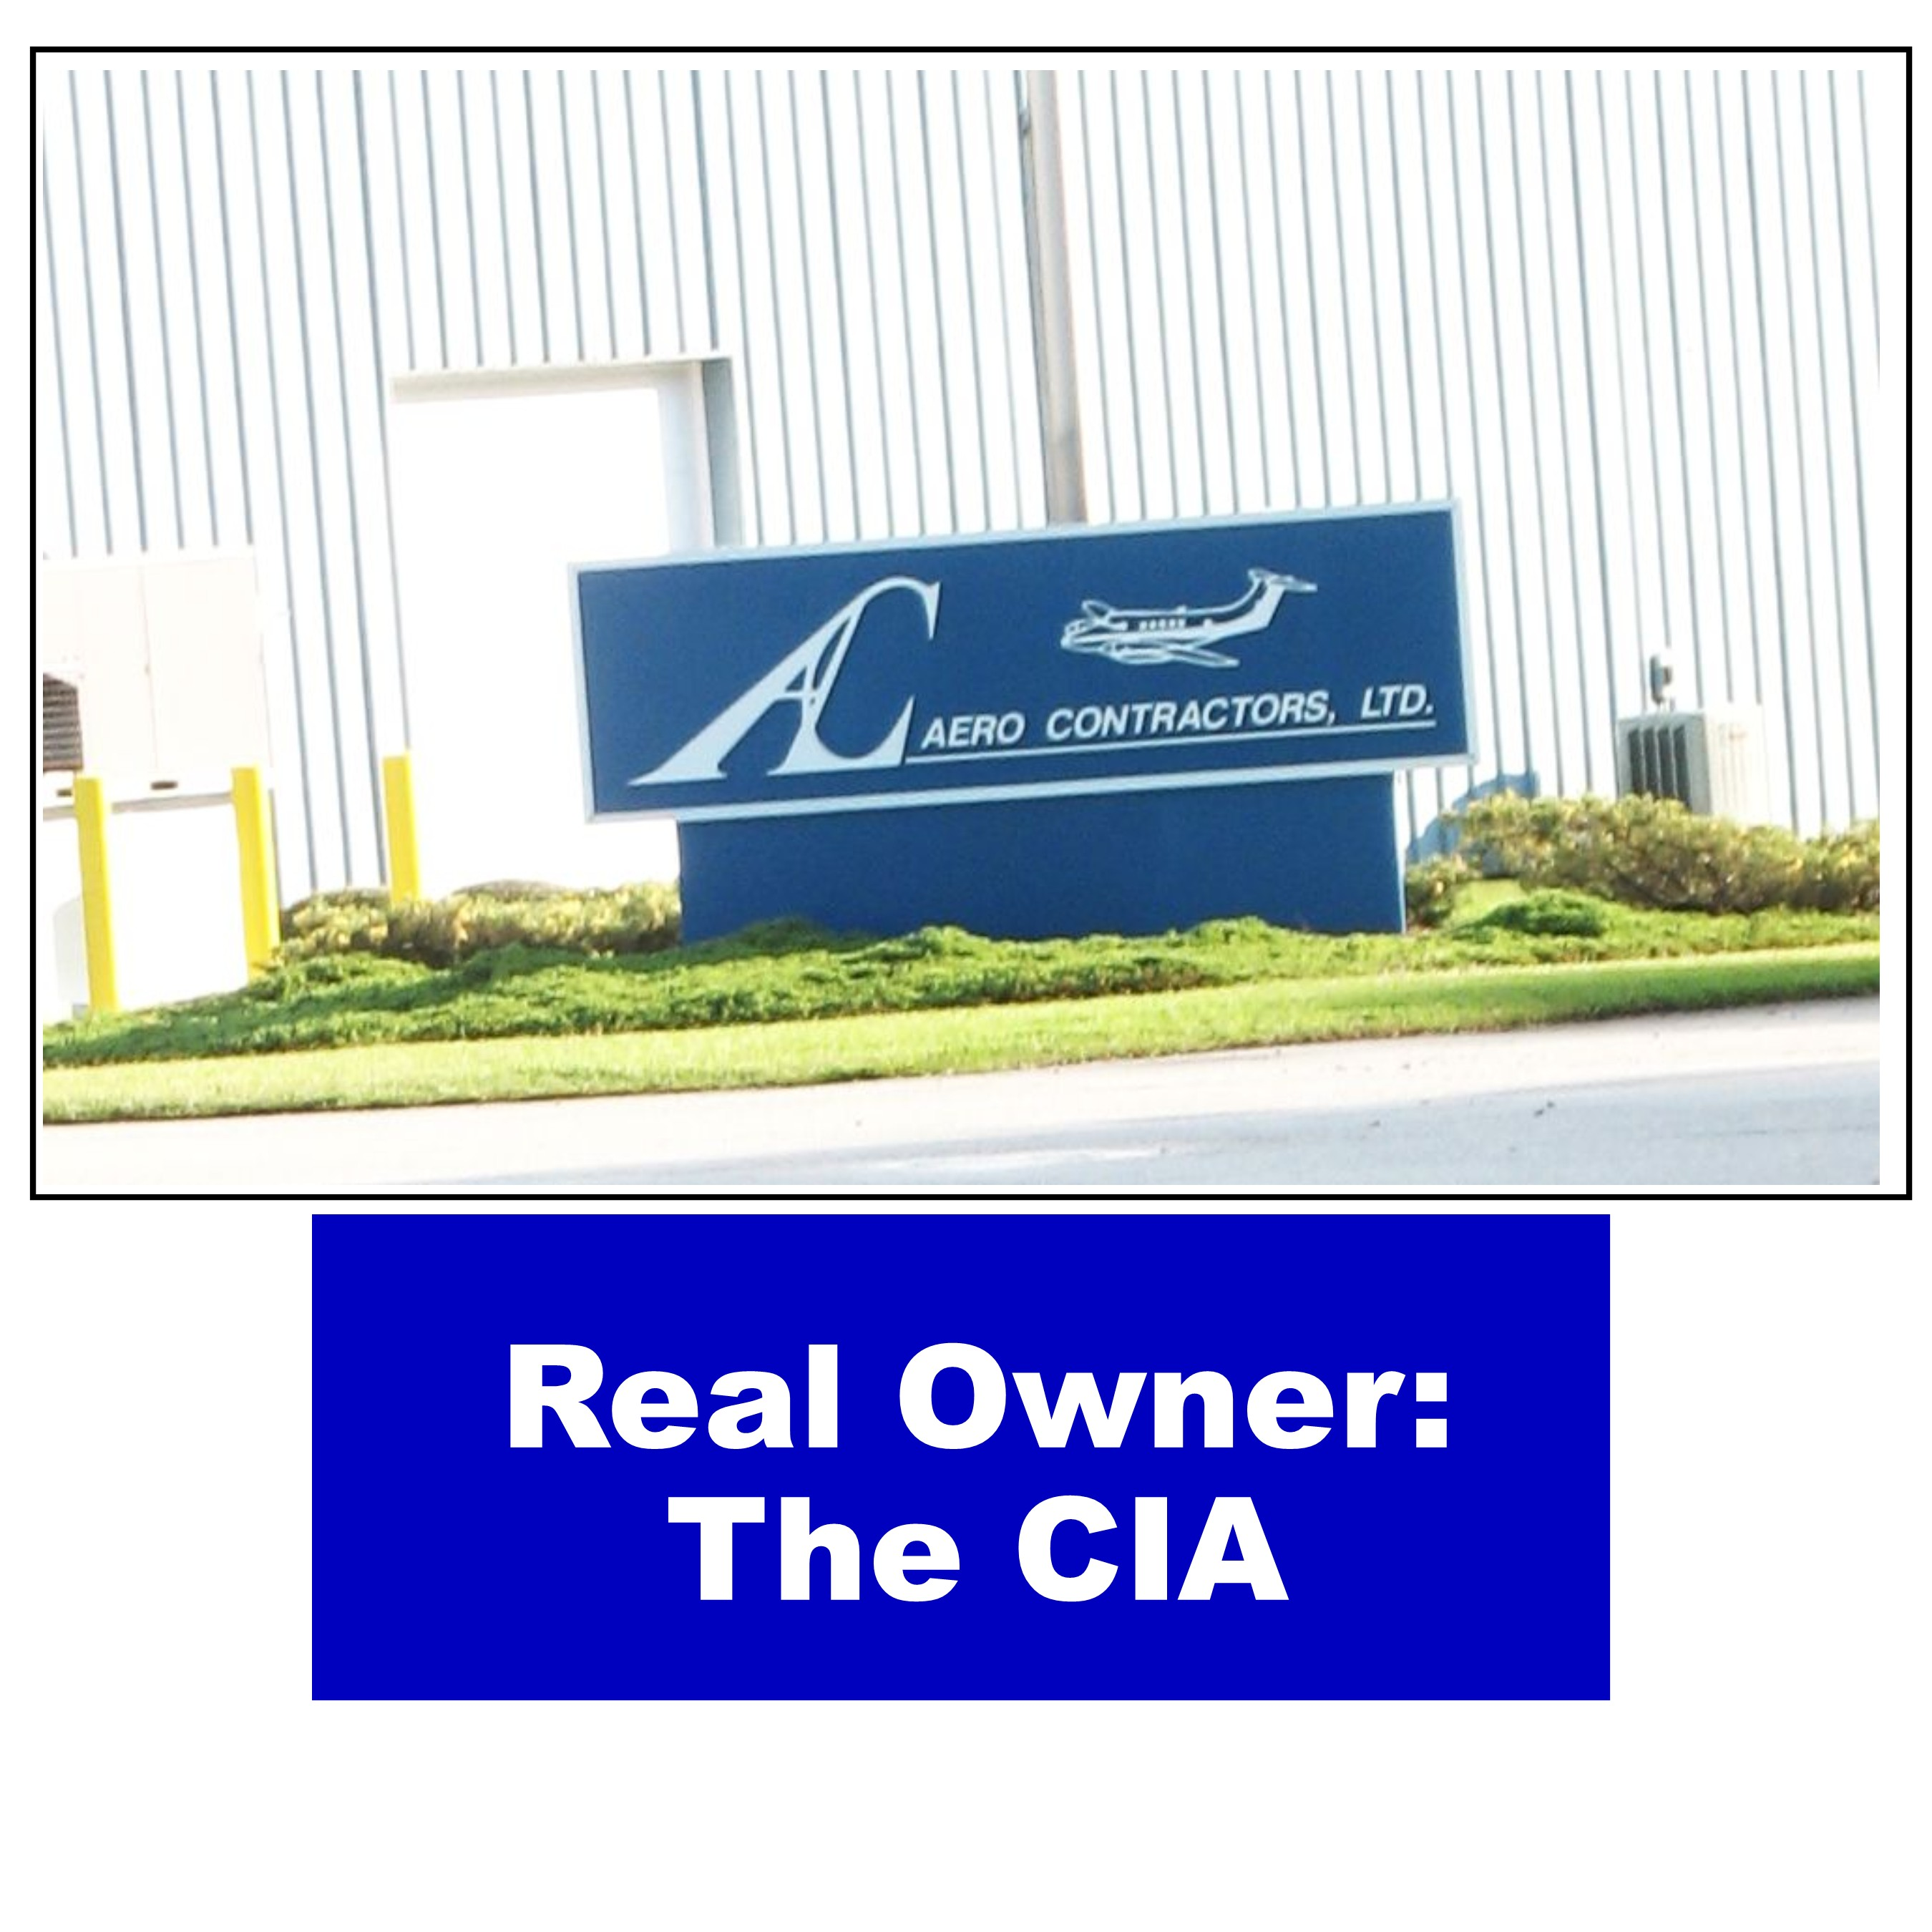 Aero Contractors in Smithfield NC has been the focus of anti-torture protests.